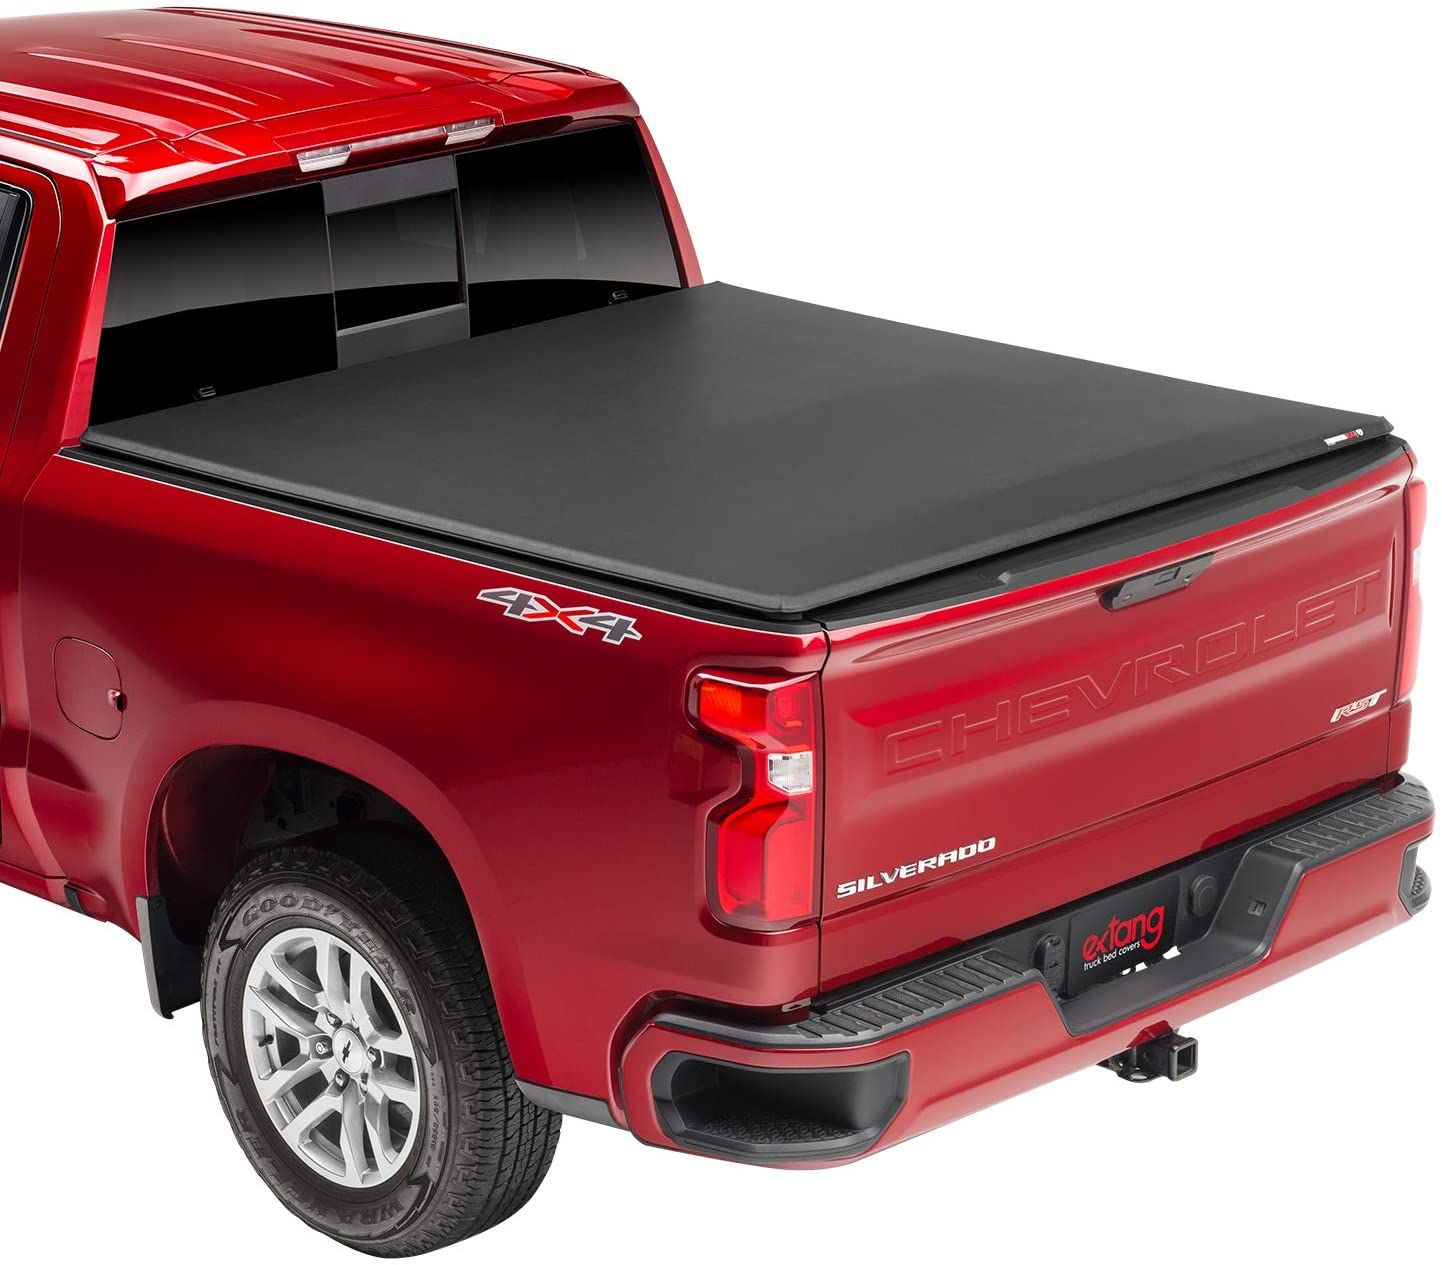 Extang Trifecta 2 0 Soft Folding Truck Bed Tonneau Cover 92940 Fits 99 06 07 Hd Chevy Gmc Silverado Sierra In 2021 Tonneau Cover Super Luxury Cars Gmc Sierra 1500